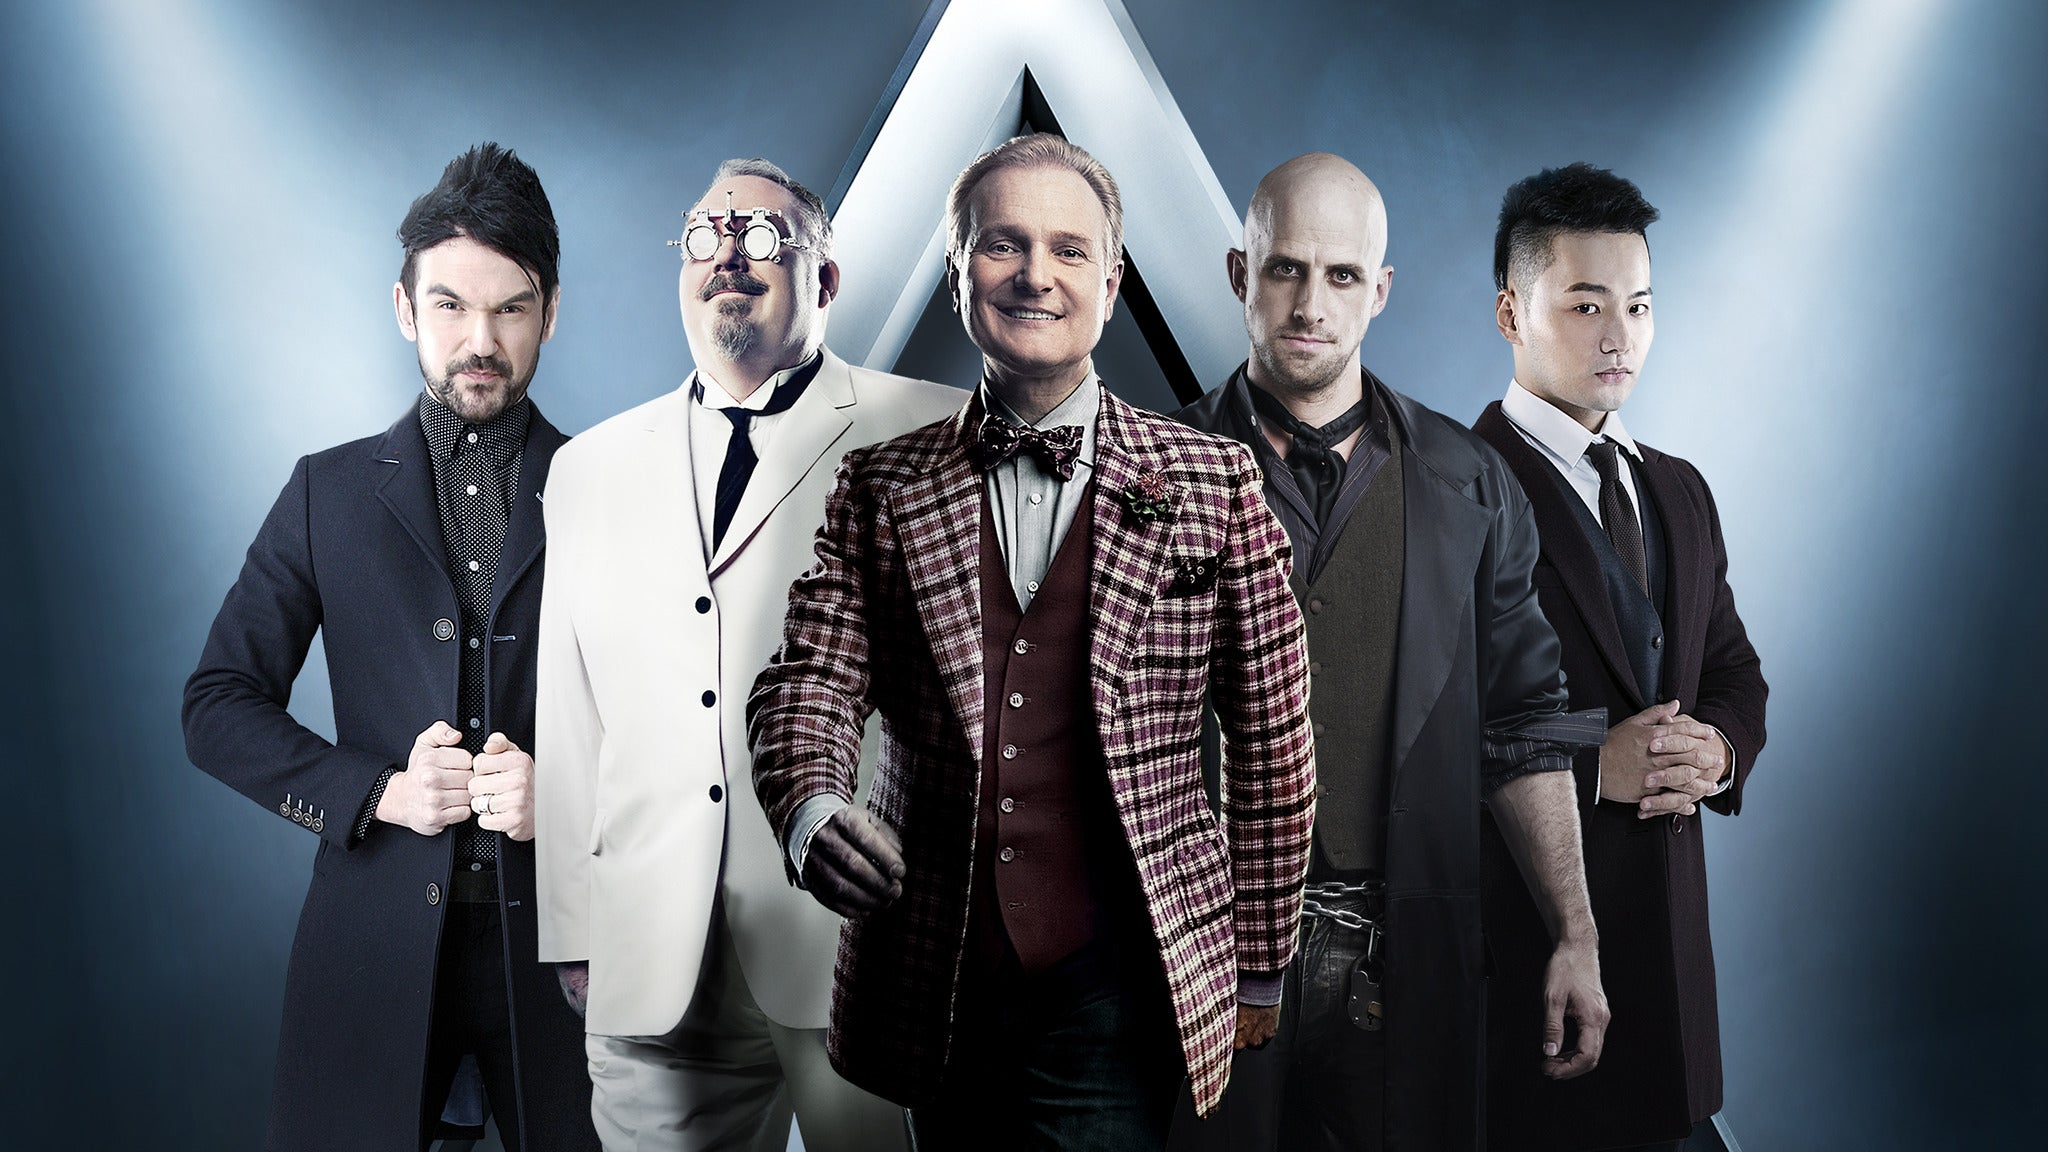 The Illusionists - Live From Broadway (Touring) - Wilkes-Barre, PA 18701